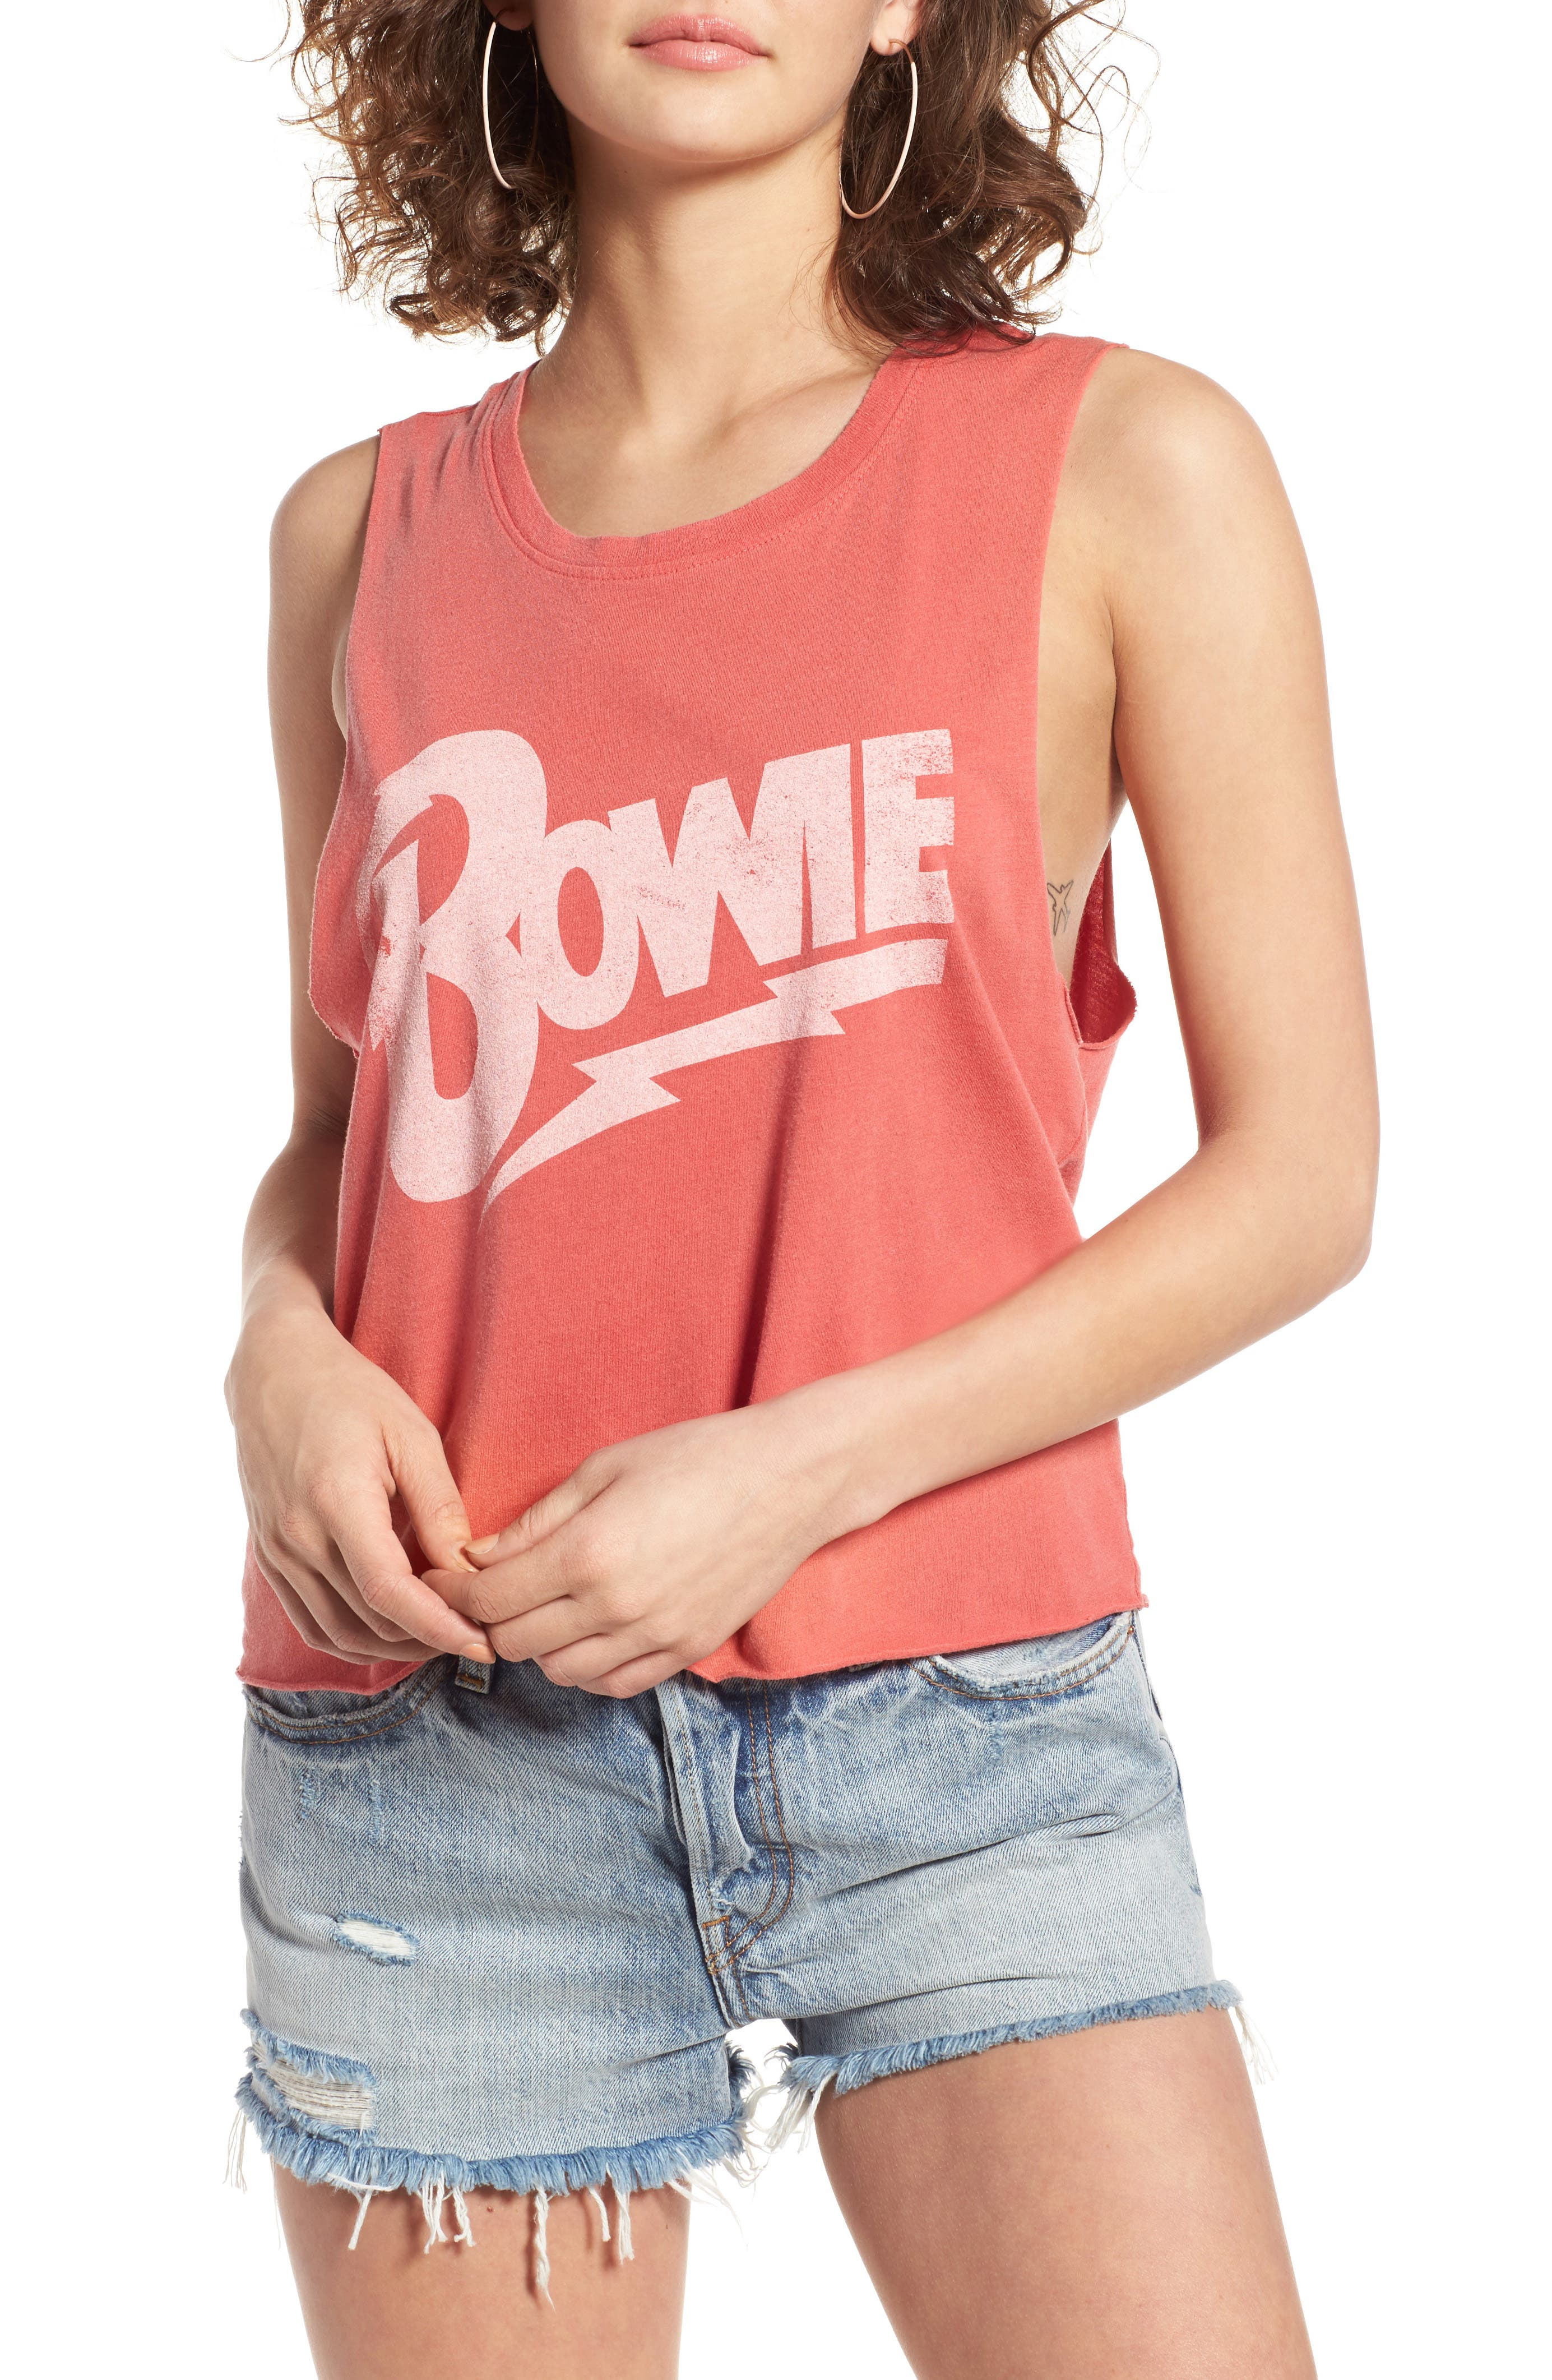 Main Image - Daydreamer Bowie Let's Dance Muscle Tee